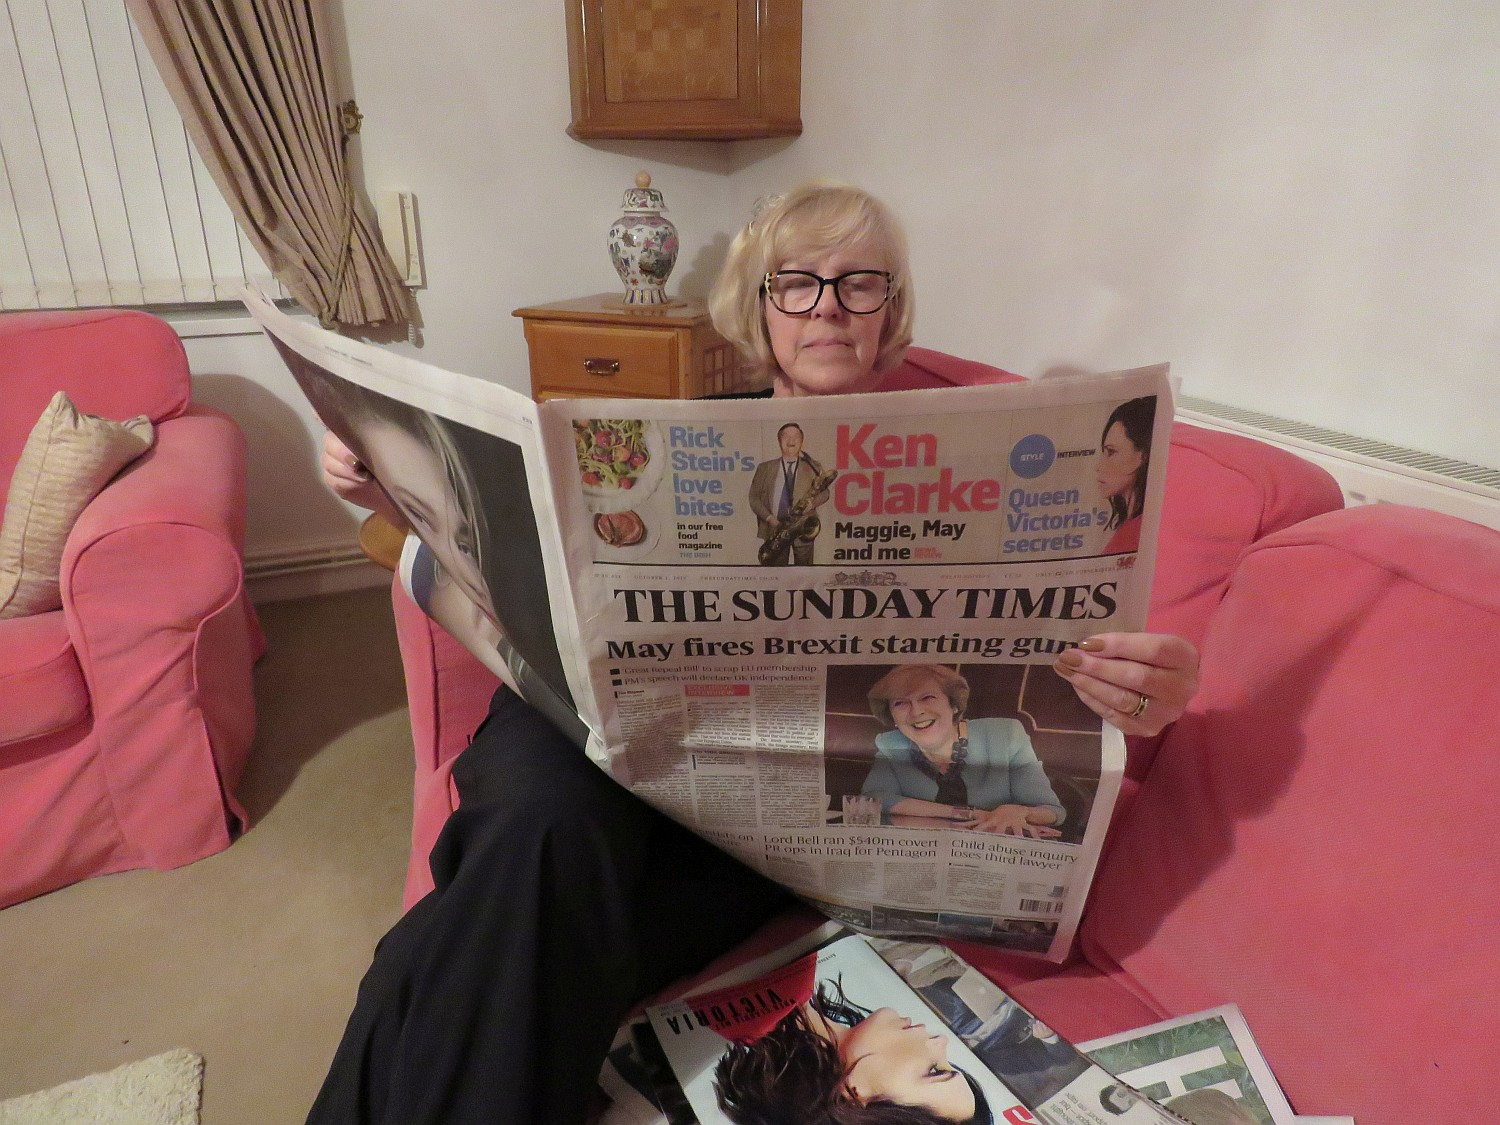 Enjoying The Sunday Times - more photos follow the post